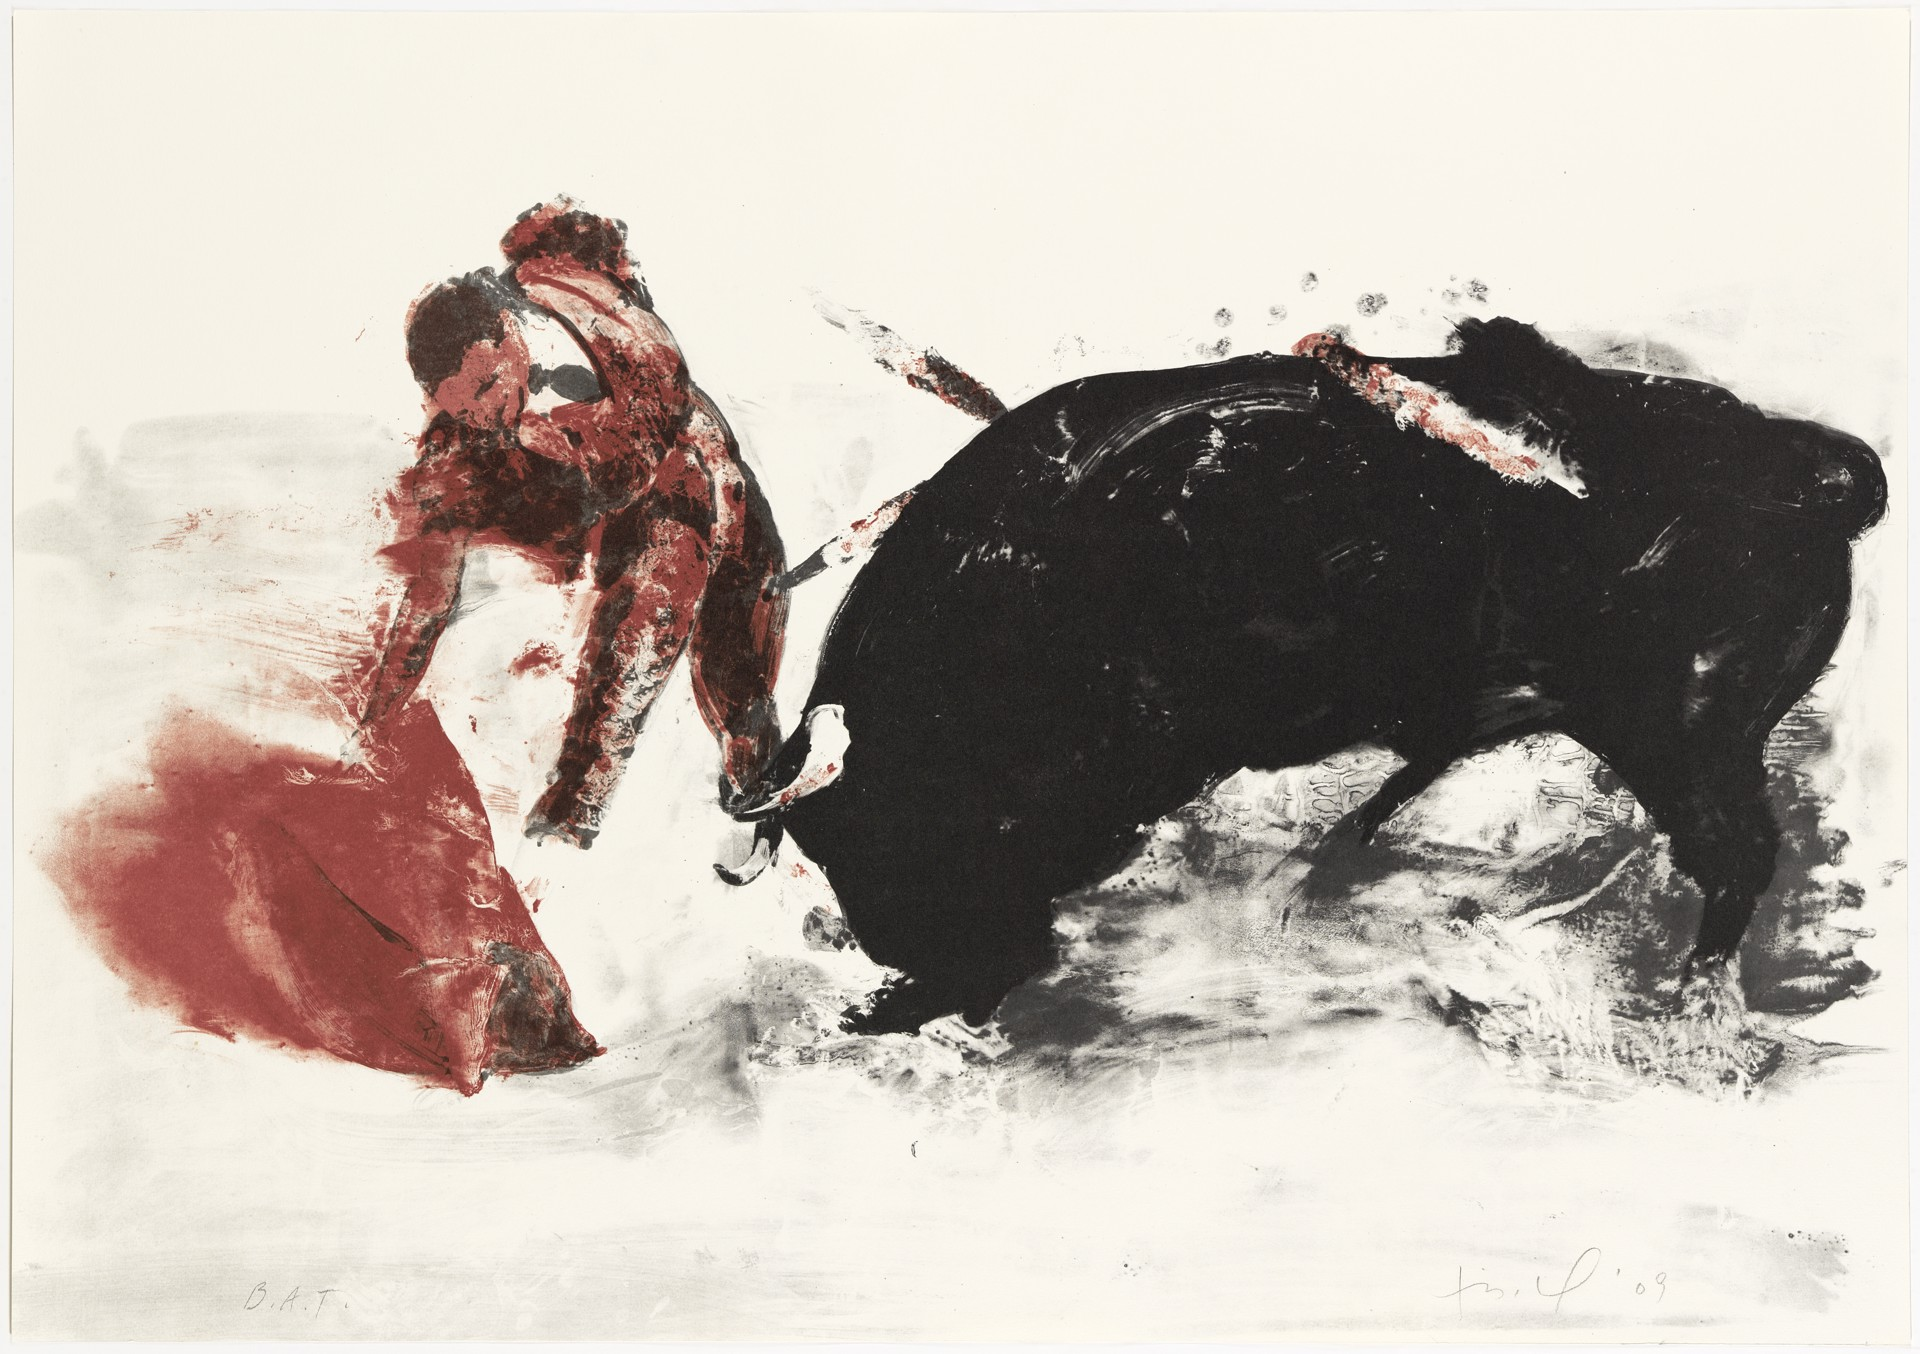 Untitled #3 by Eric Fischl